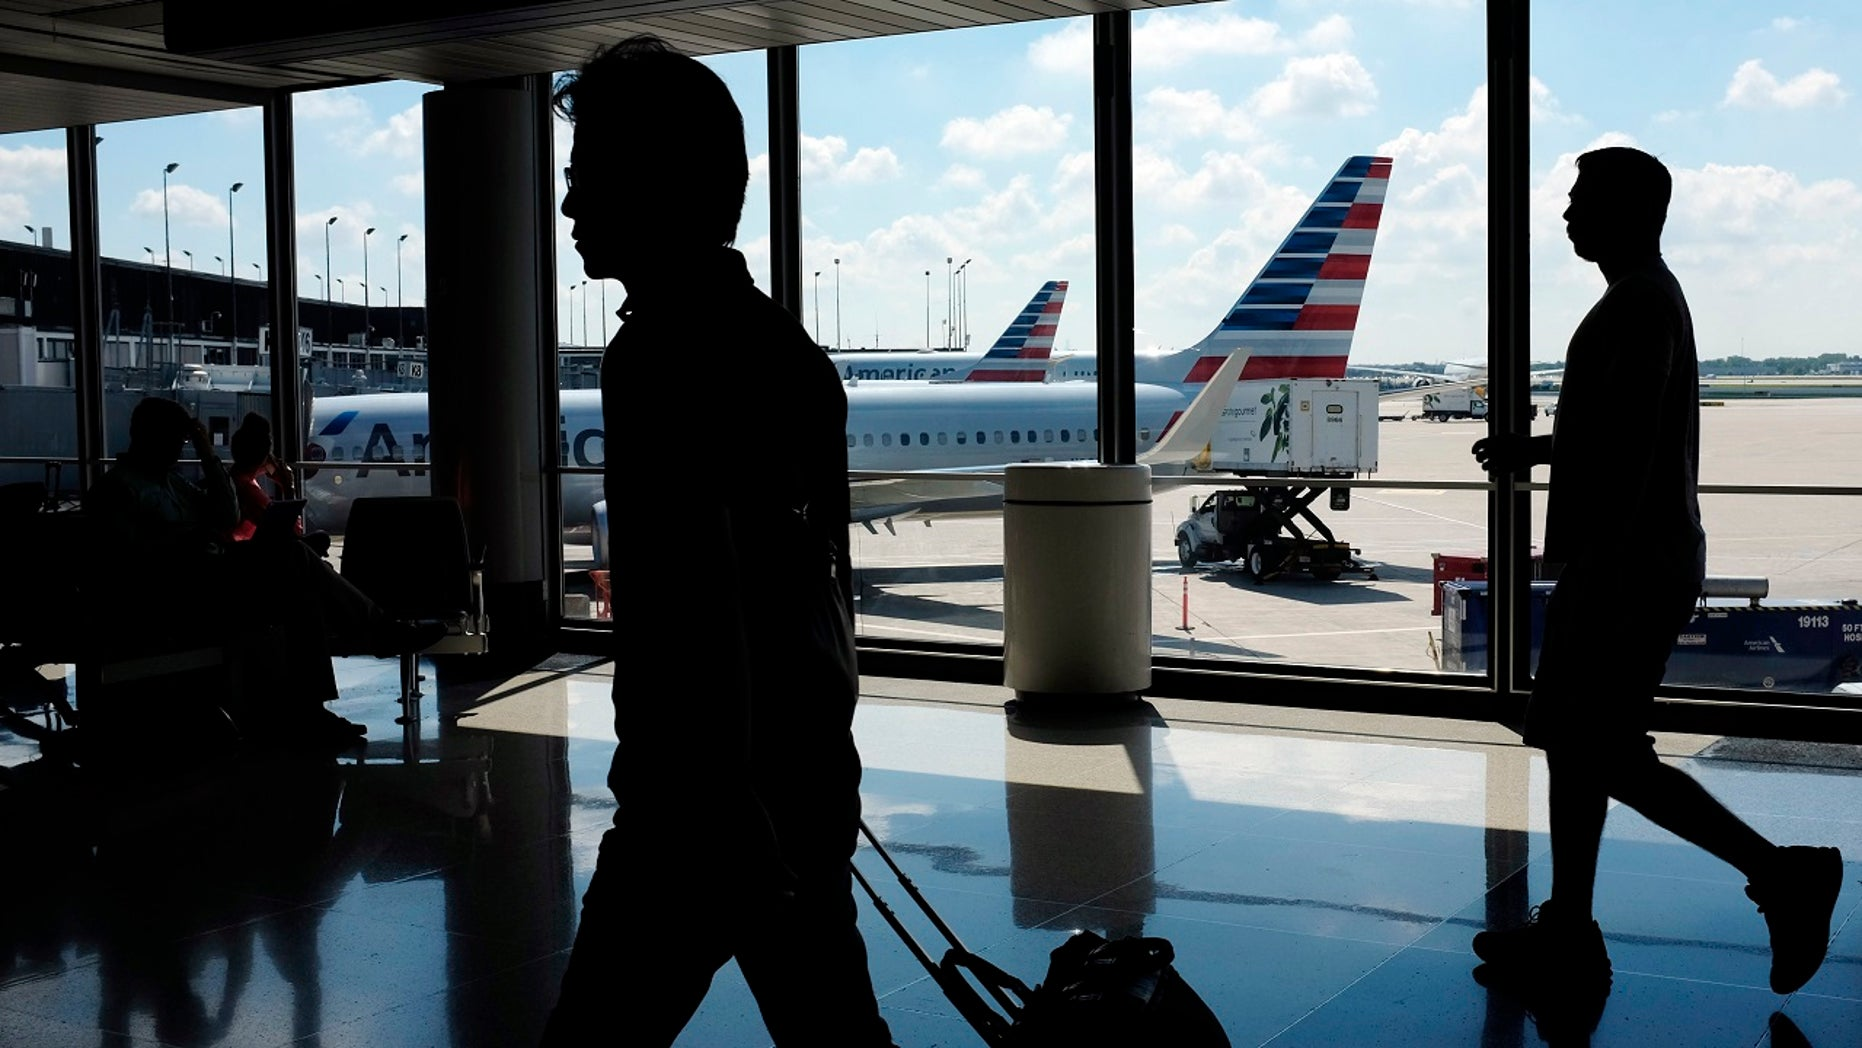 """FILE: Passengers go to their gates through the terminal when American Airlines flights are waiting to travel to the Hare International Airport in Chicago on August 1<div class=""""e3lan e3lan-in-post1""""><script async src=""""//pagead2.googlesyndication.com/pagead/js/adsbygoogle.js""""></script> <!-- Text_Display_Responsive --> <ins class=""""adsbygoogle""""      style=""""display:block""""      data-ad-client=""""ca-pub-6192903739091894""""      data-ad-slot=""""3136787391""""      data-ad-format=""""auto""""      data-full-width-responsive=""""true""""></ins> <script> (adsbygoogle = window.adsbygoogle    []).push({}); </script></div>, 2016."""